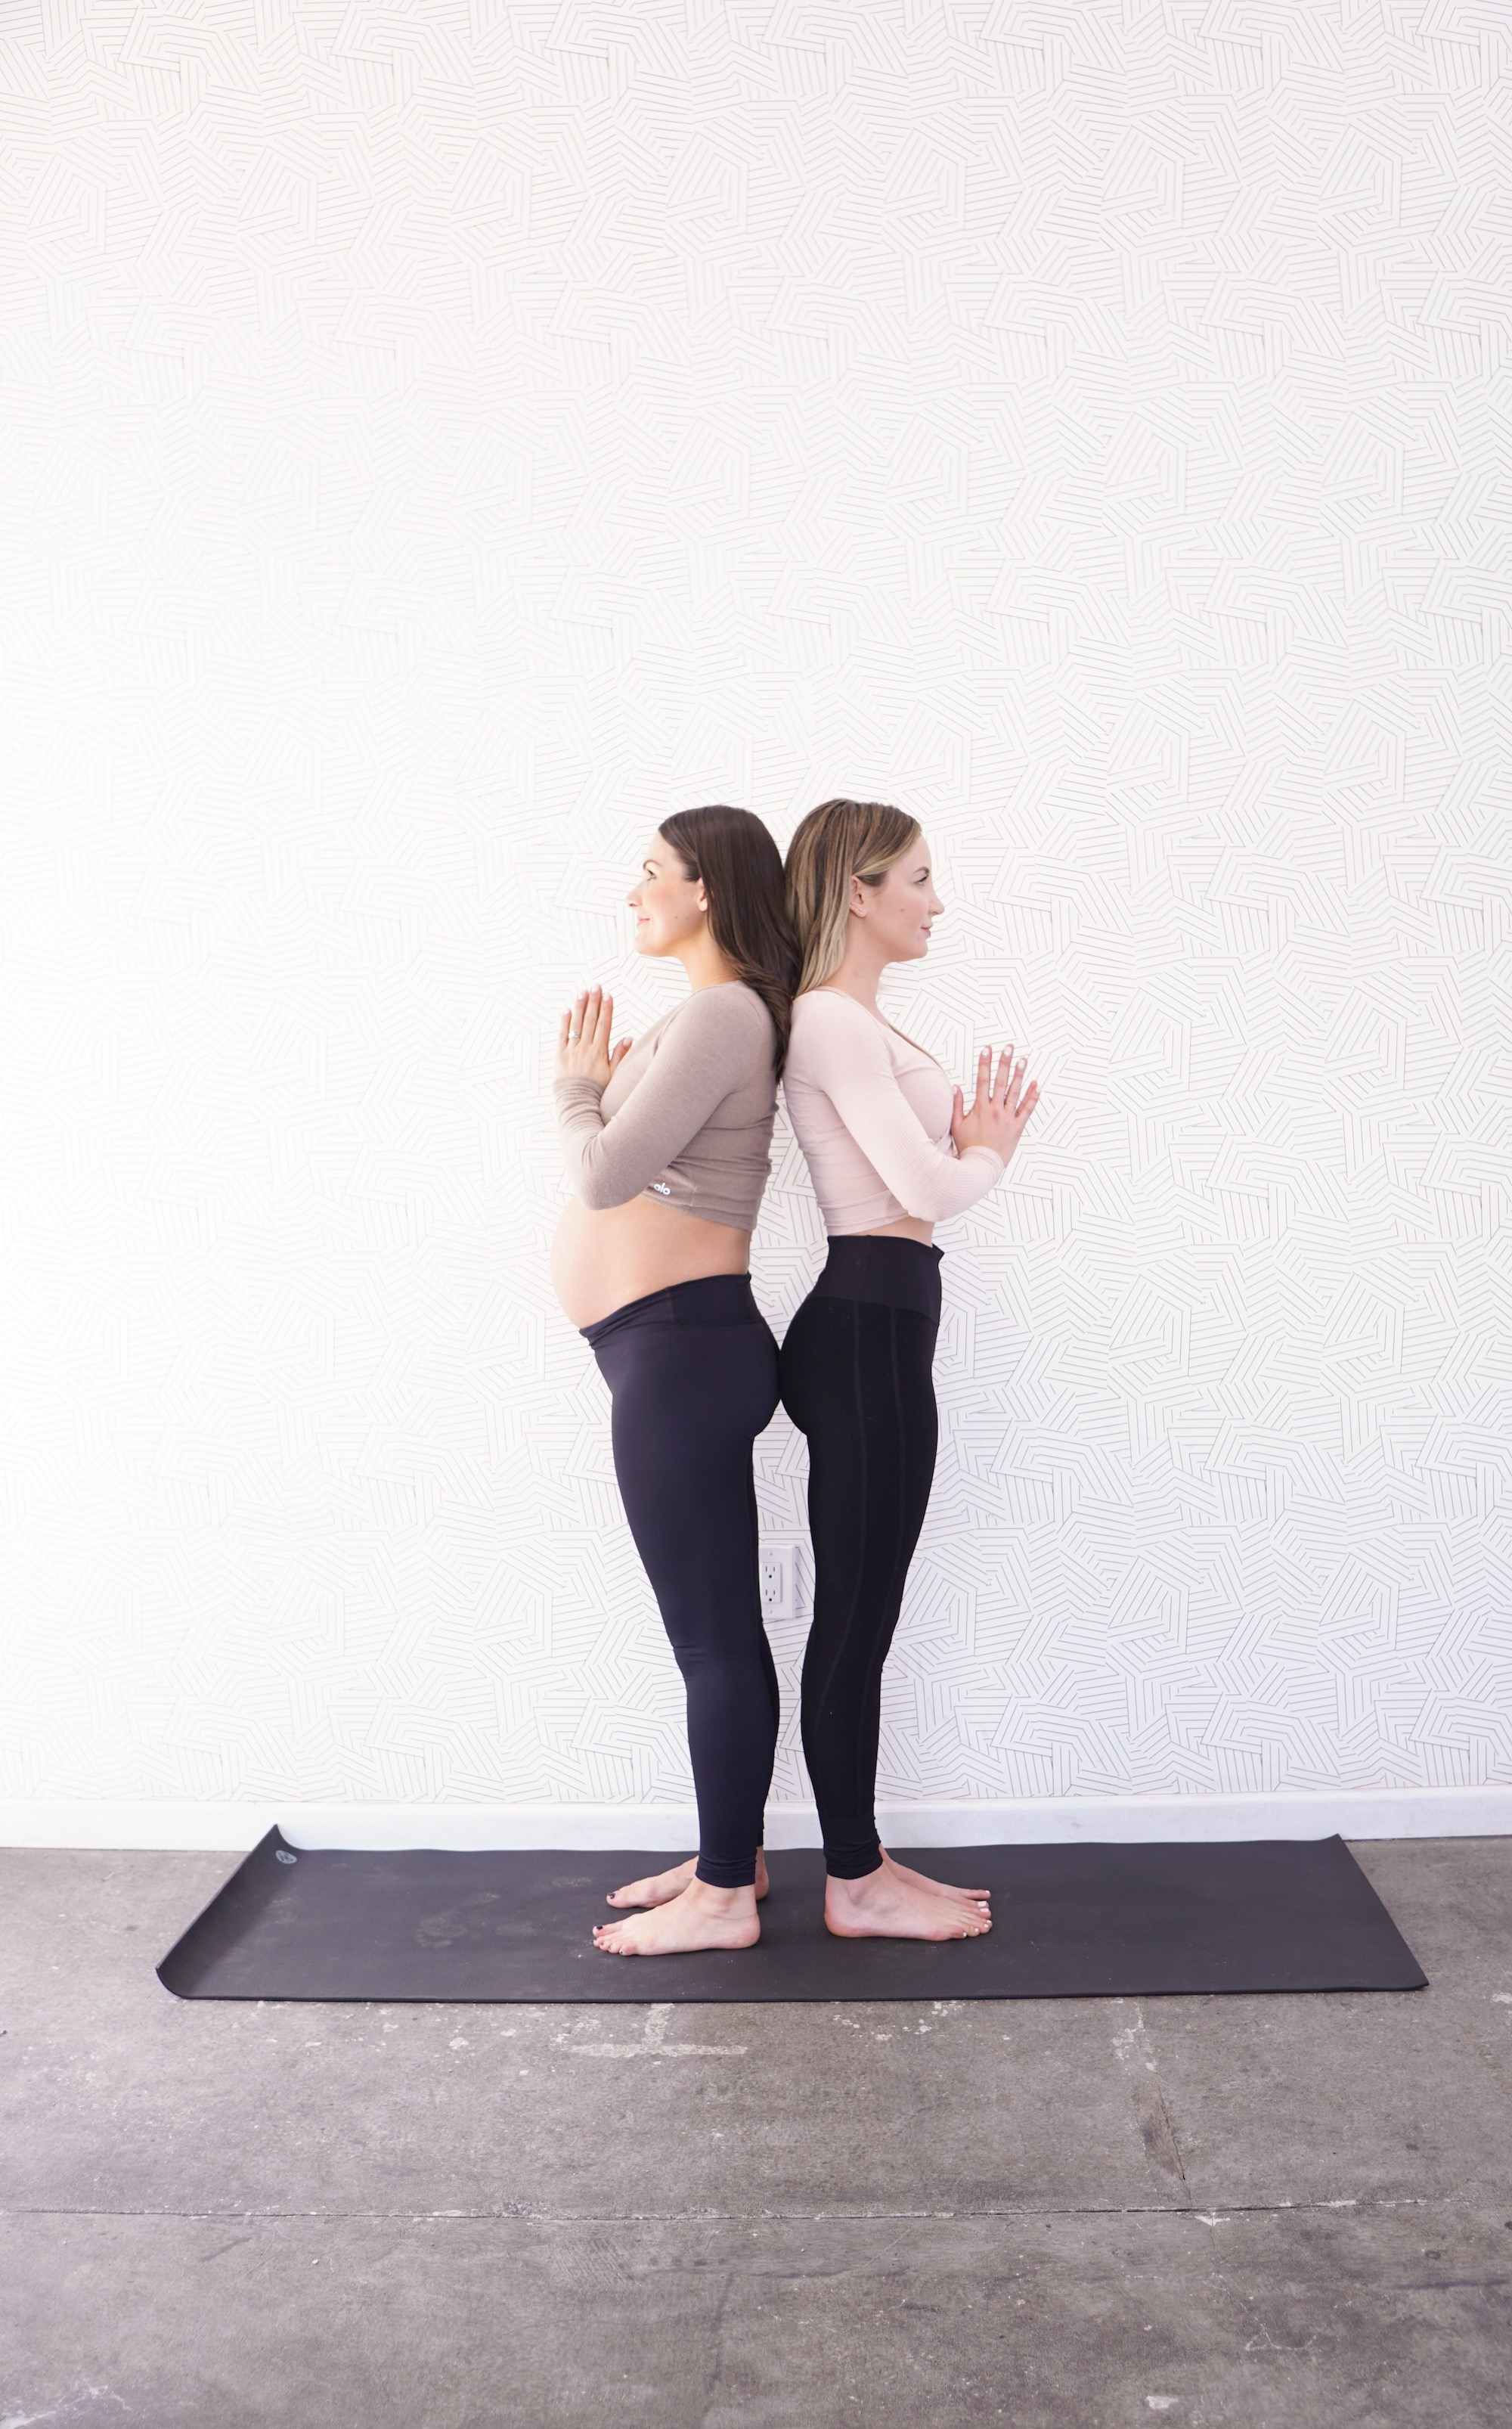 Yoga Poses to Avoid During Pregnancy with Modifications // Whitney